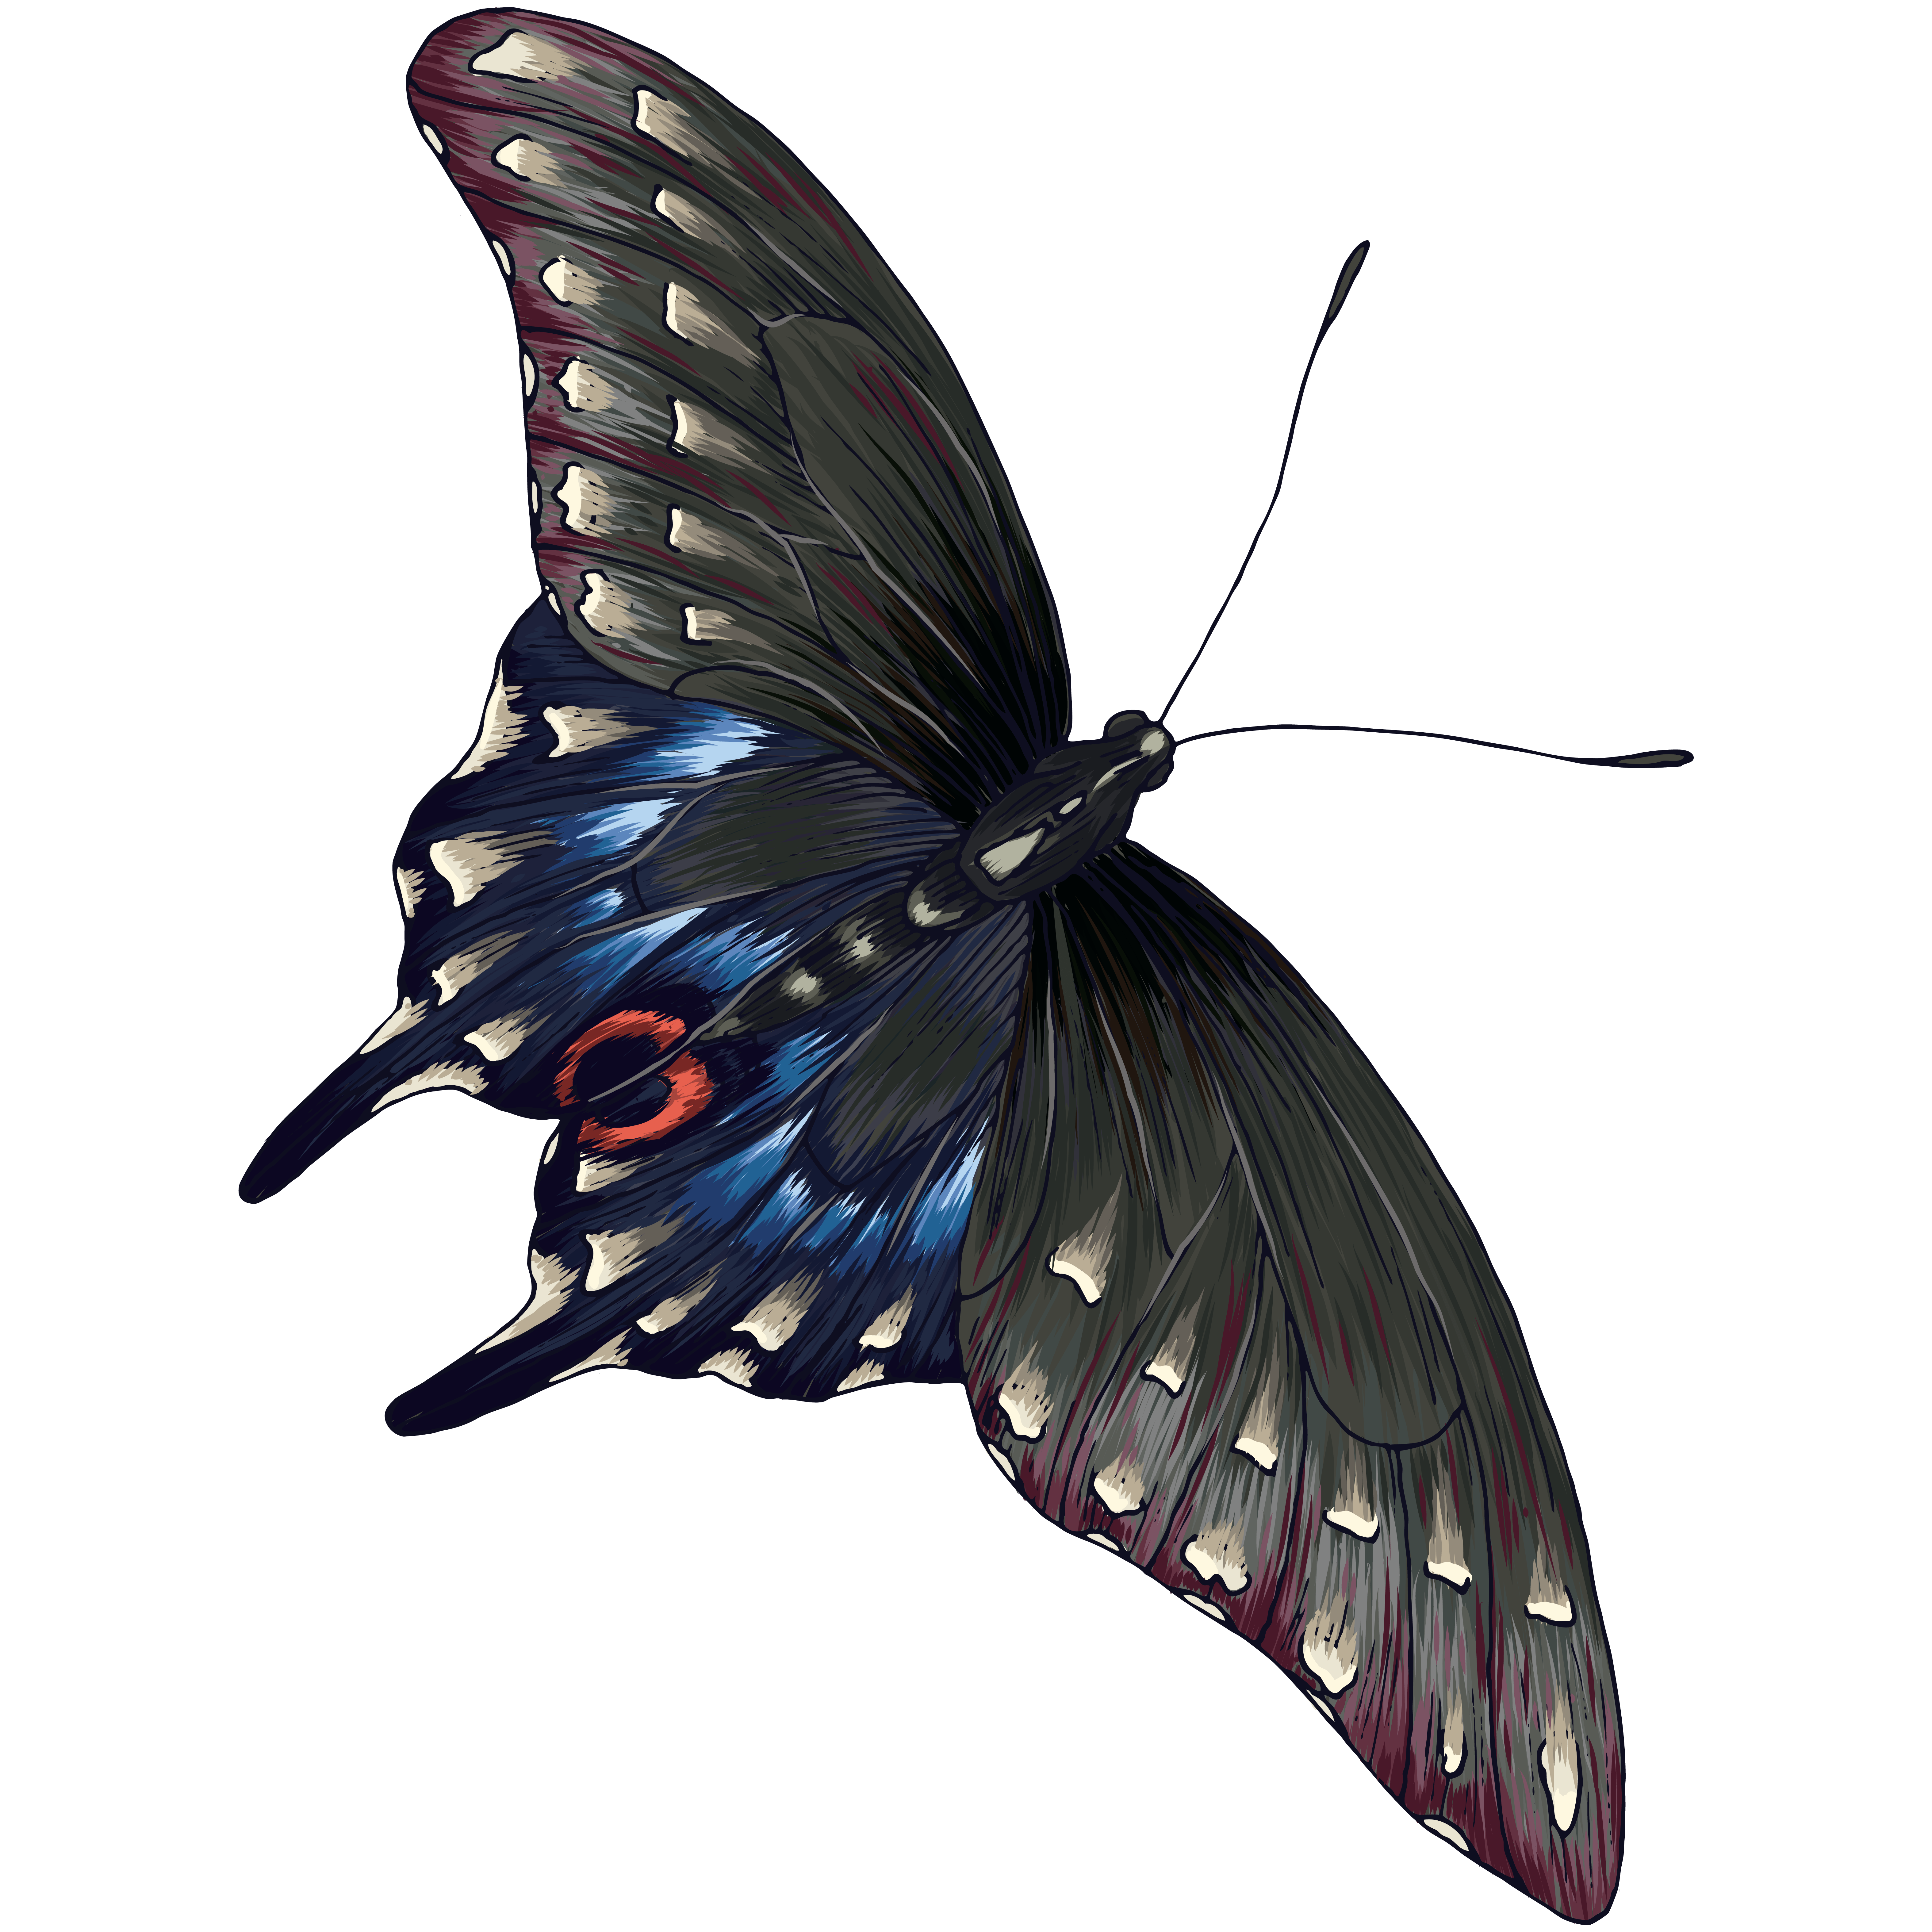 Butterfly Transparent Image